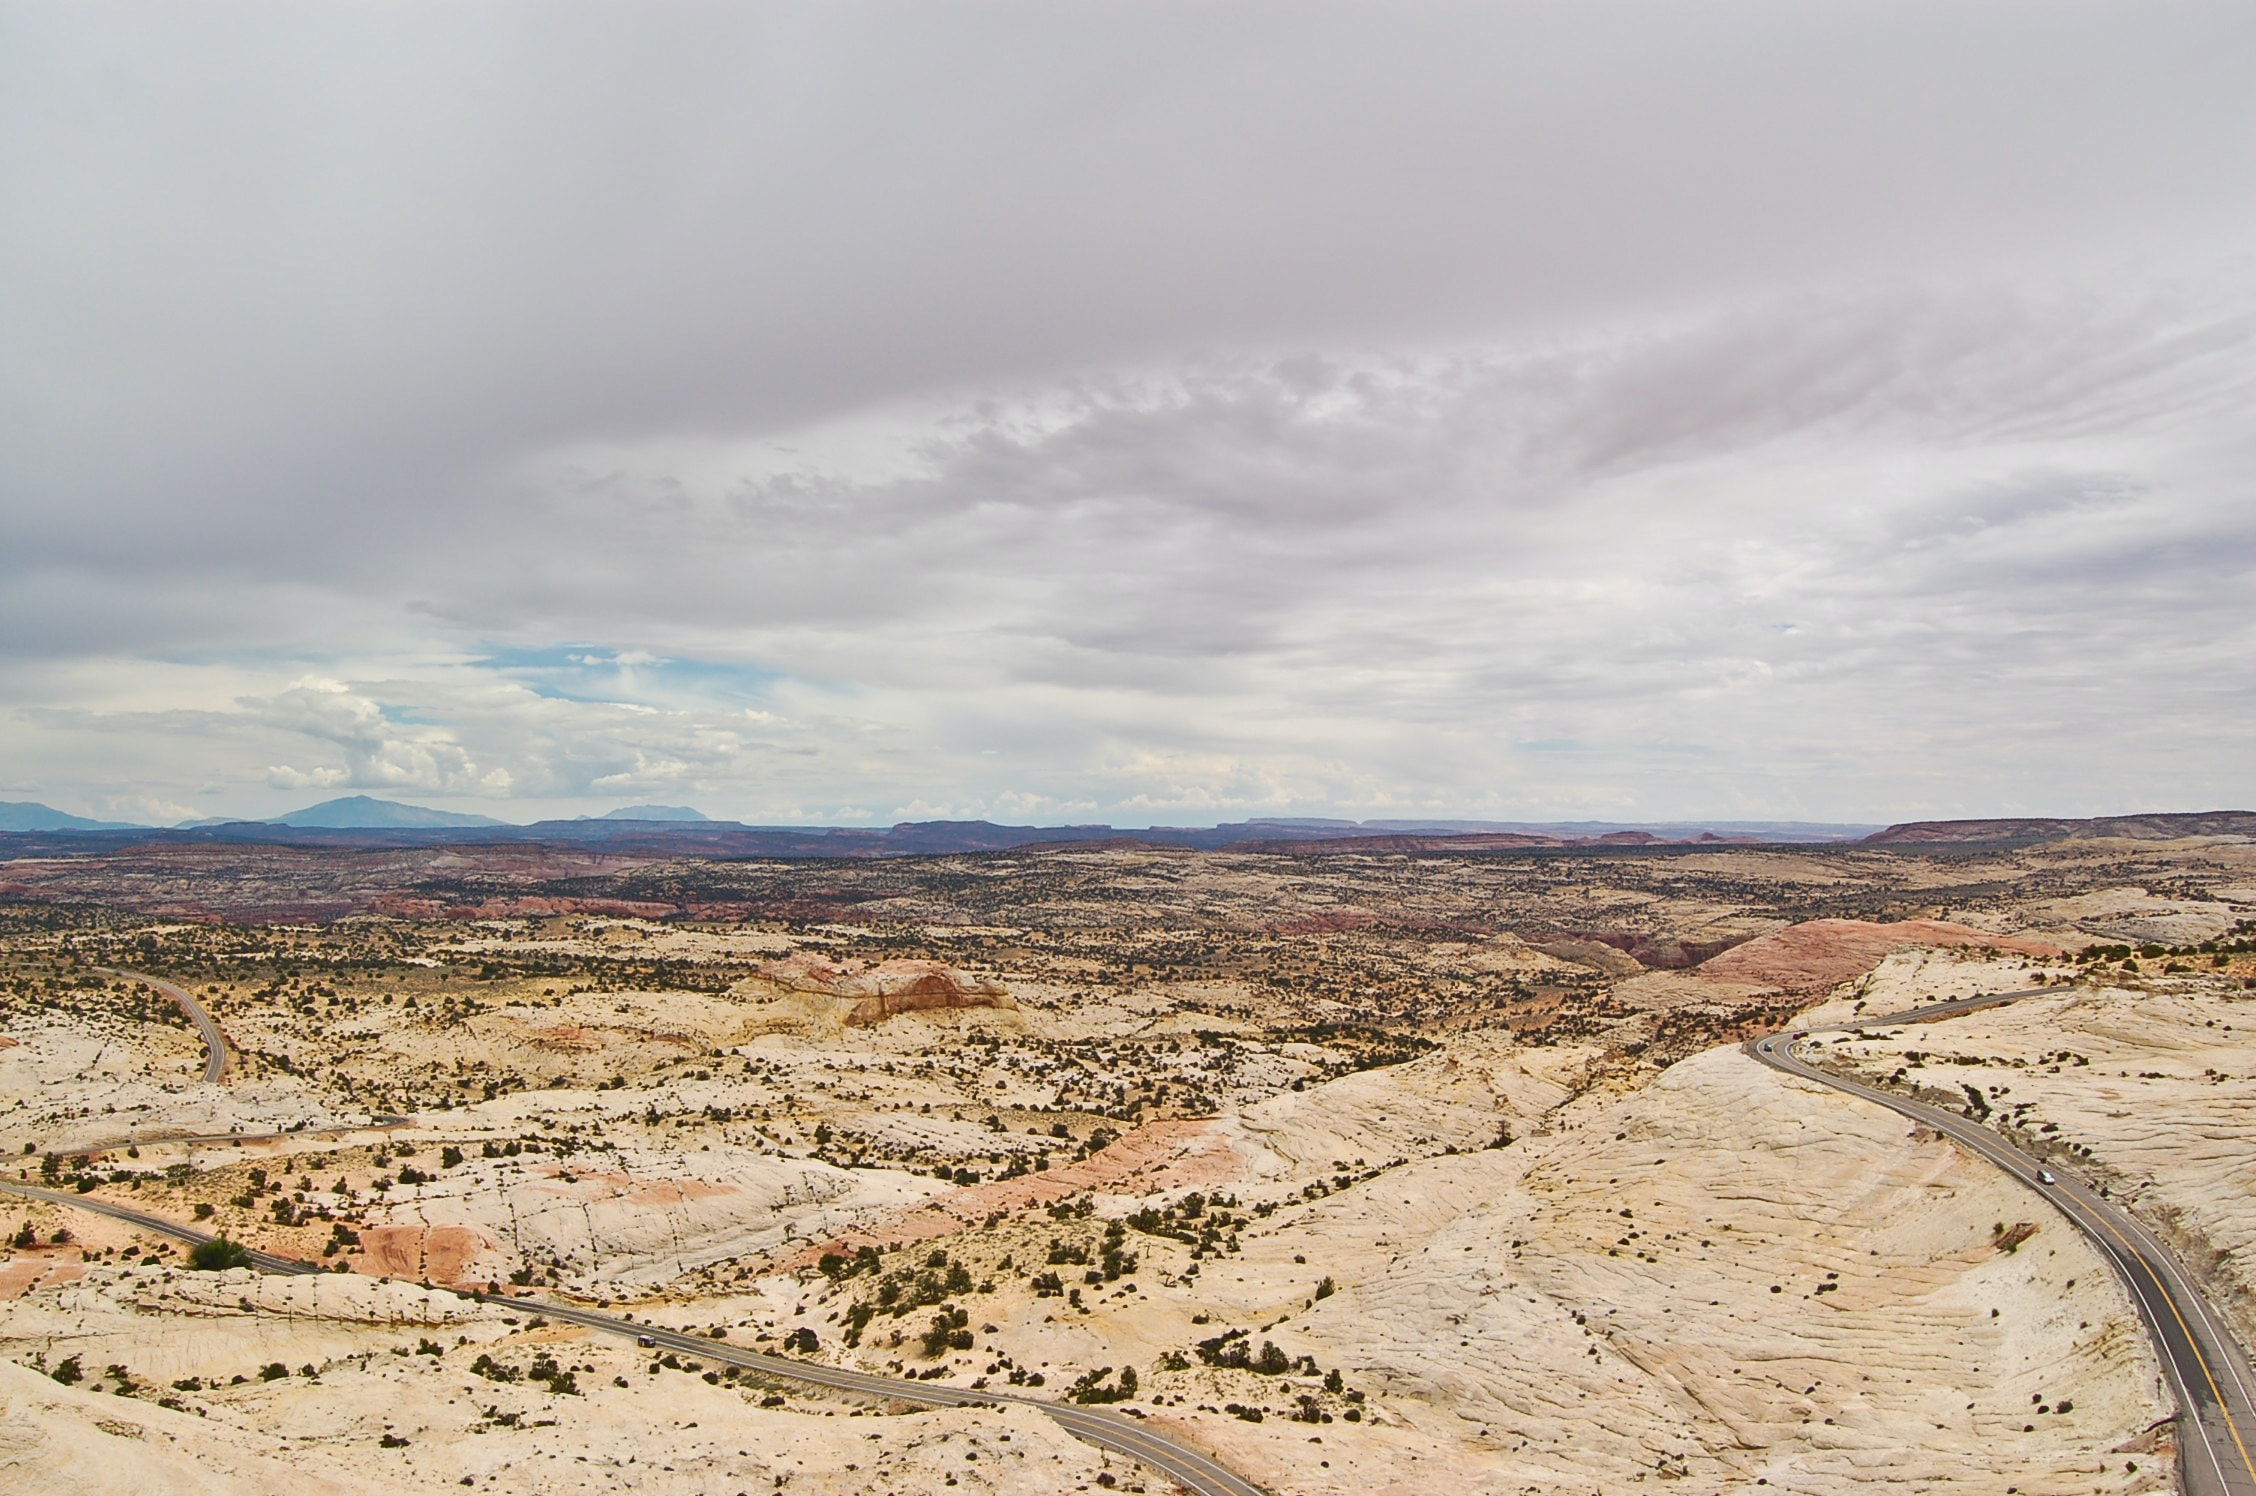 aerial shot of dried land under cloudy sky